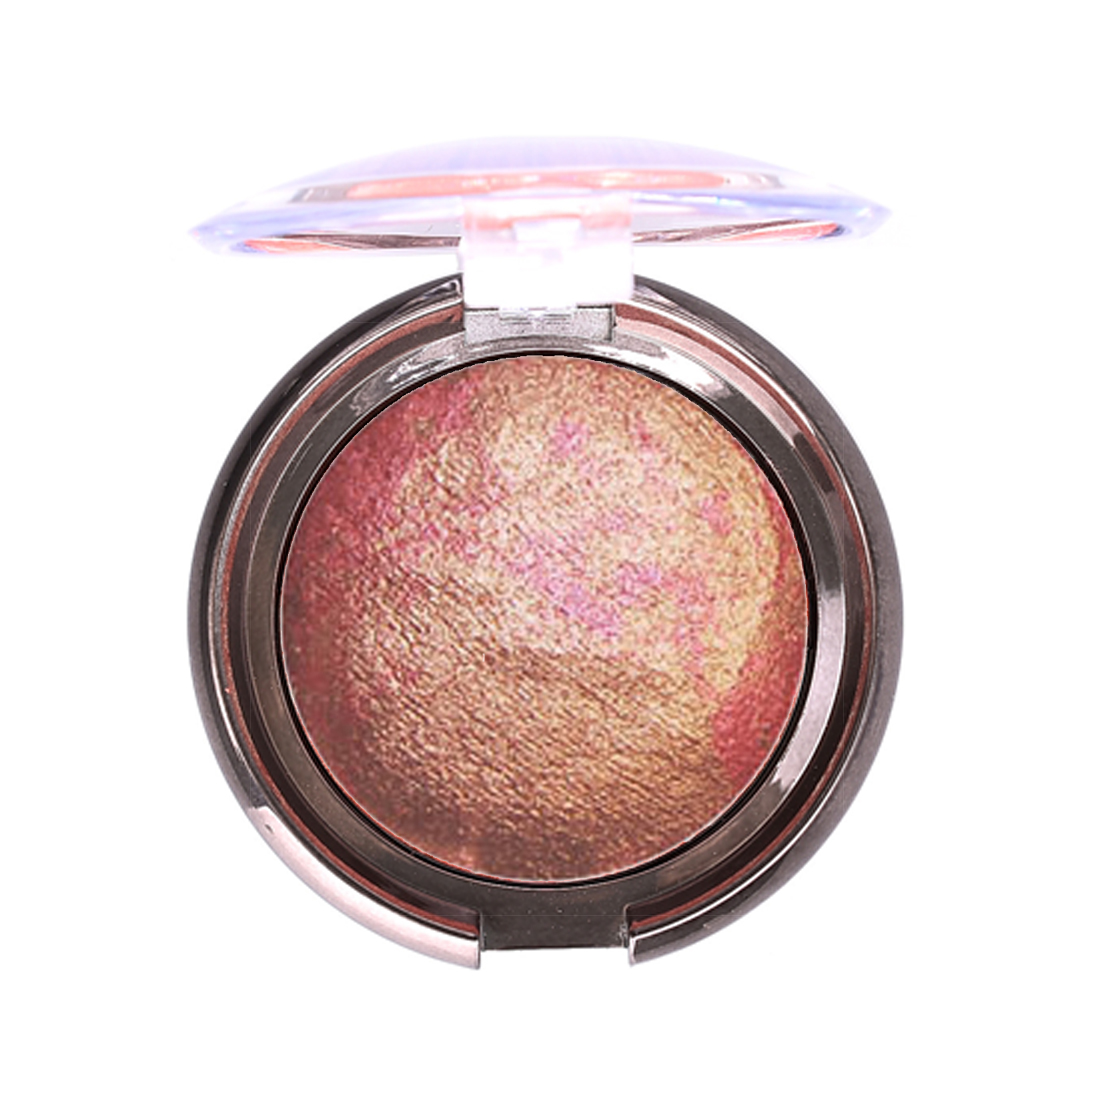 Hottest Shimmer Bronzer Highlight Powder Blush Palette Makeup Stardust-multi Silky Smooth Mineral Baked Cheek Color Blusher Beauty & Health Face